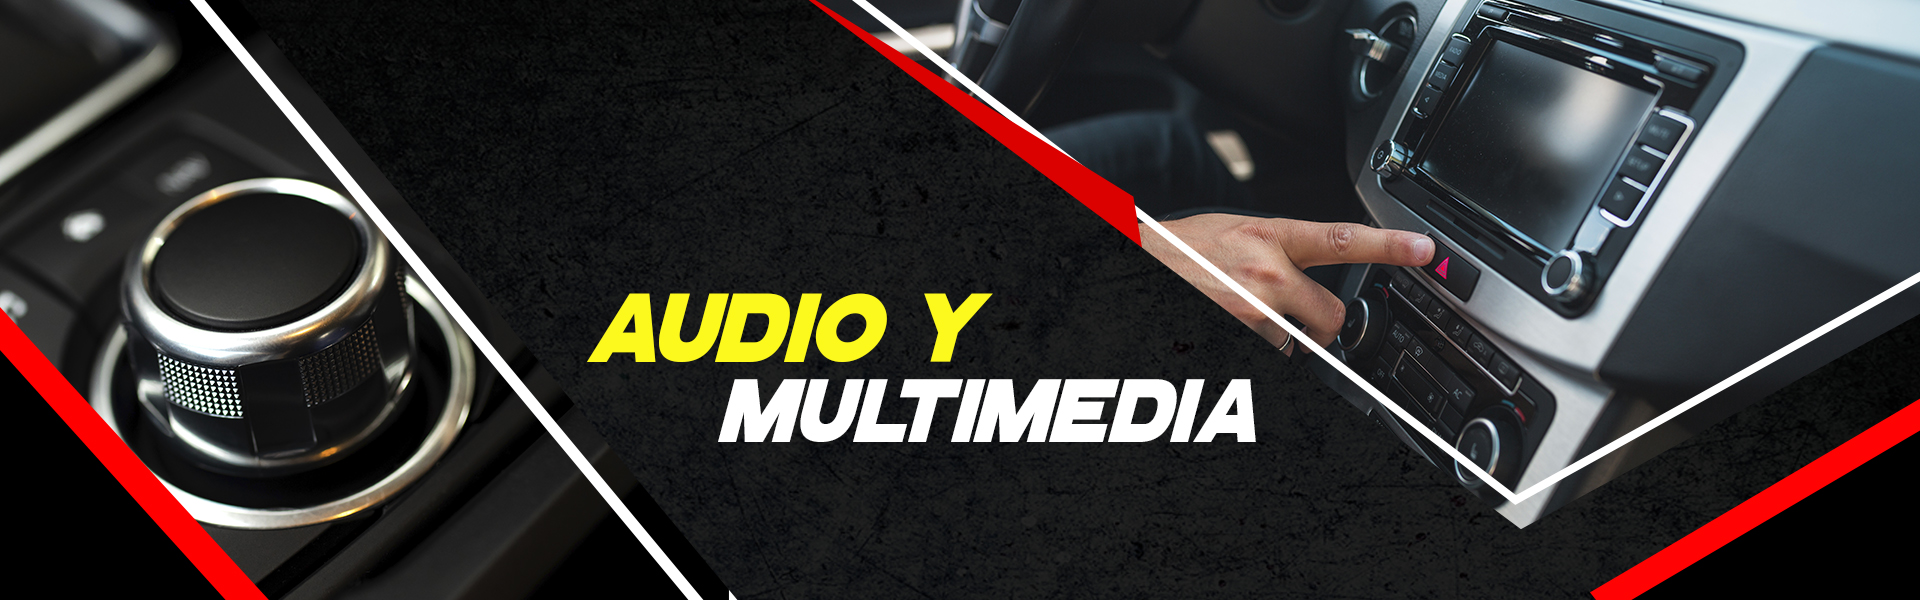 Audio y multimedia